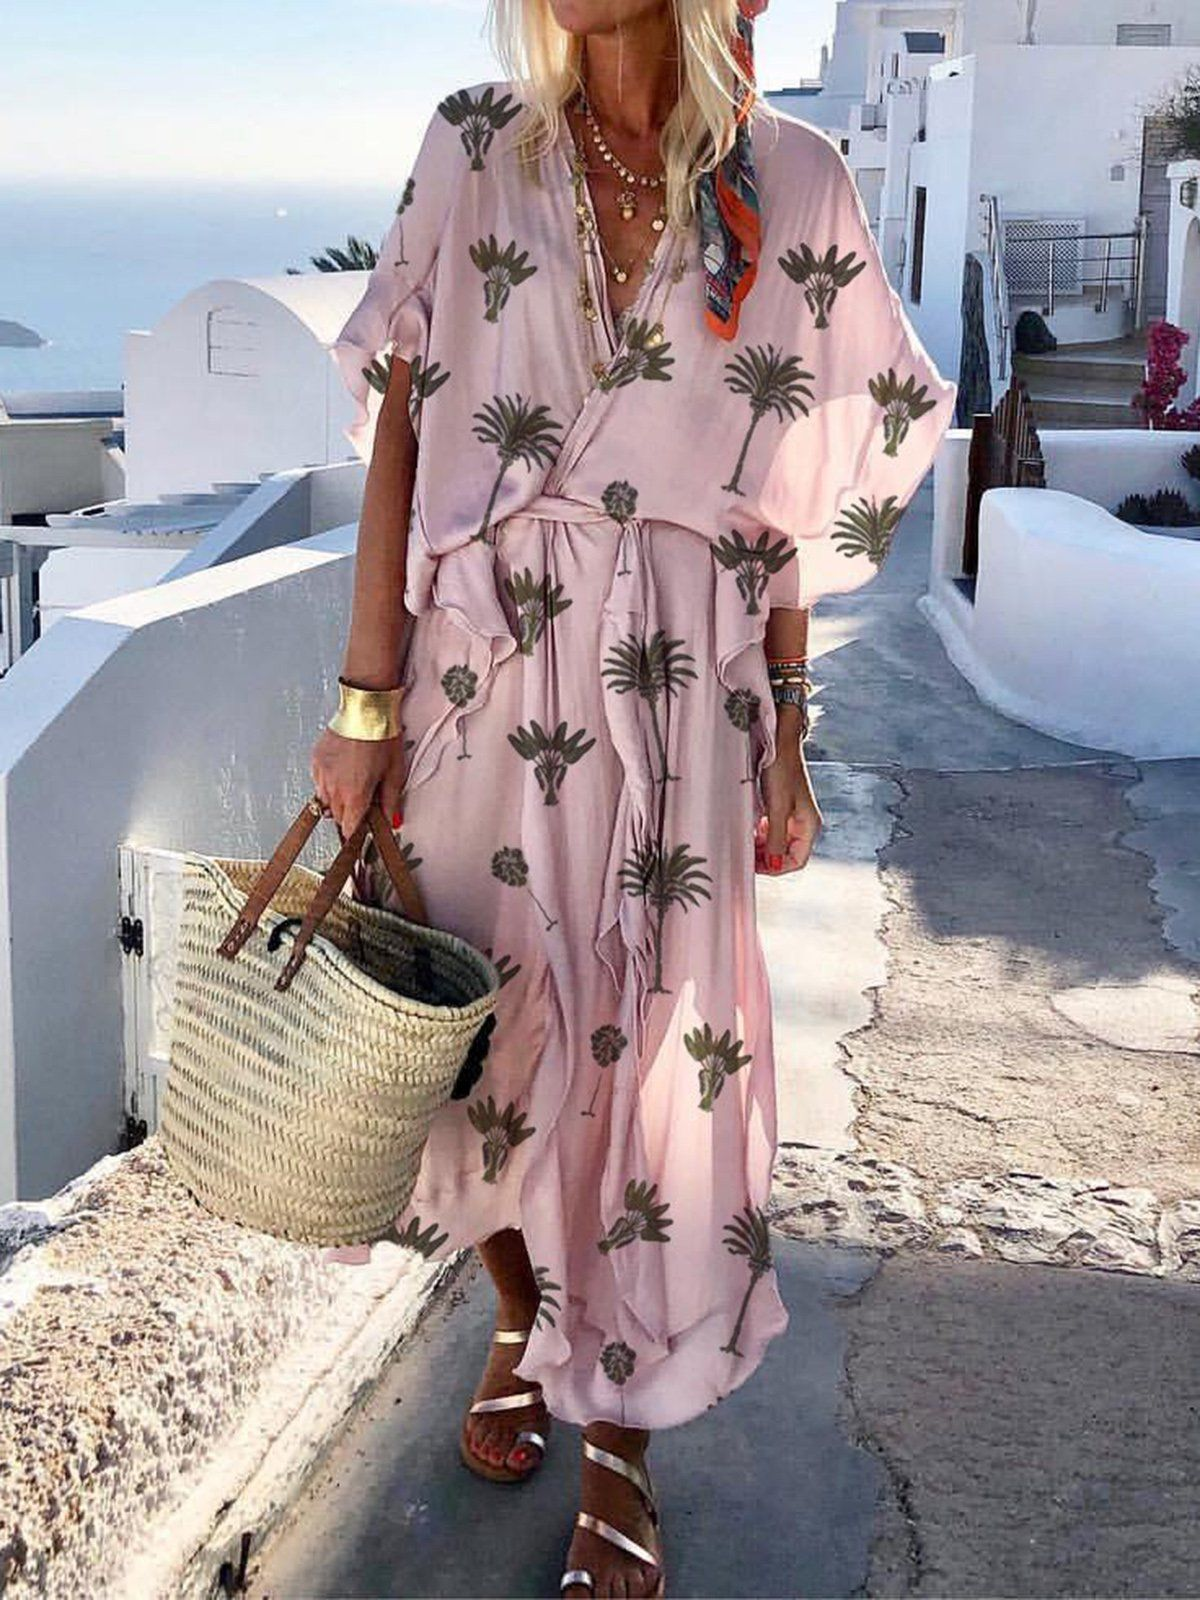 Bohemian Printed Colour Batwing Sleeve V Neck Dress Dresses For Vacation Vacation Outfit Ideas Vacation D Summer Dress Outfits Fashion Maxi Dress With Sleeves [ 1600 x 1200 Pixel ]